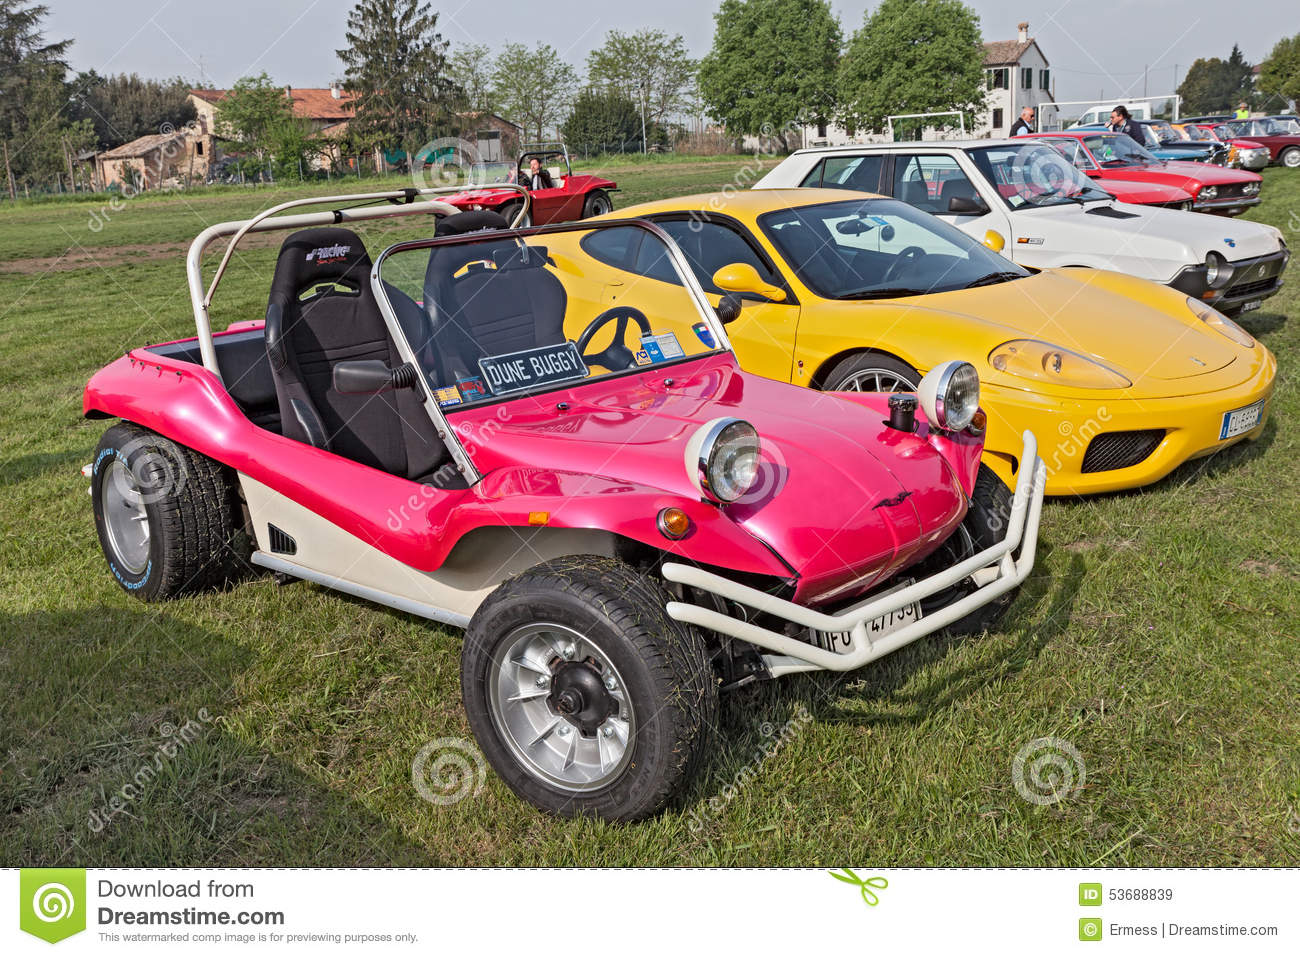 Ferrari Off Road Photos Free Royalty Free Stock Photos From Dreamstime